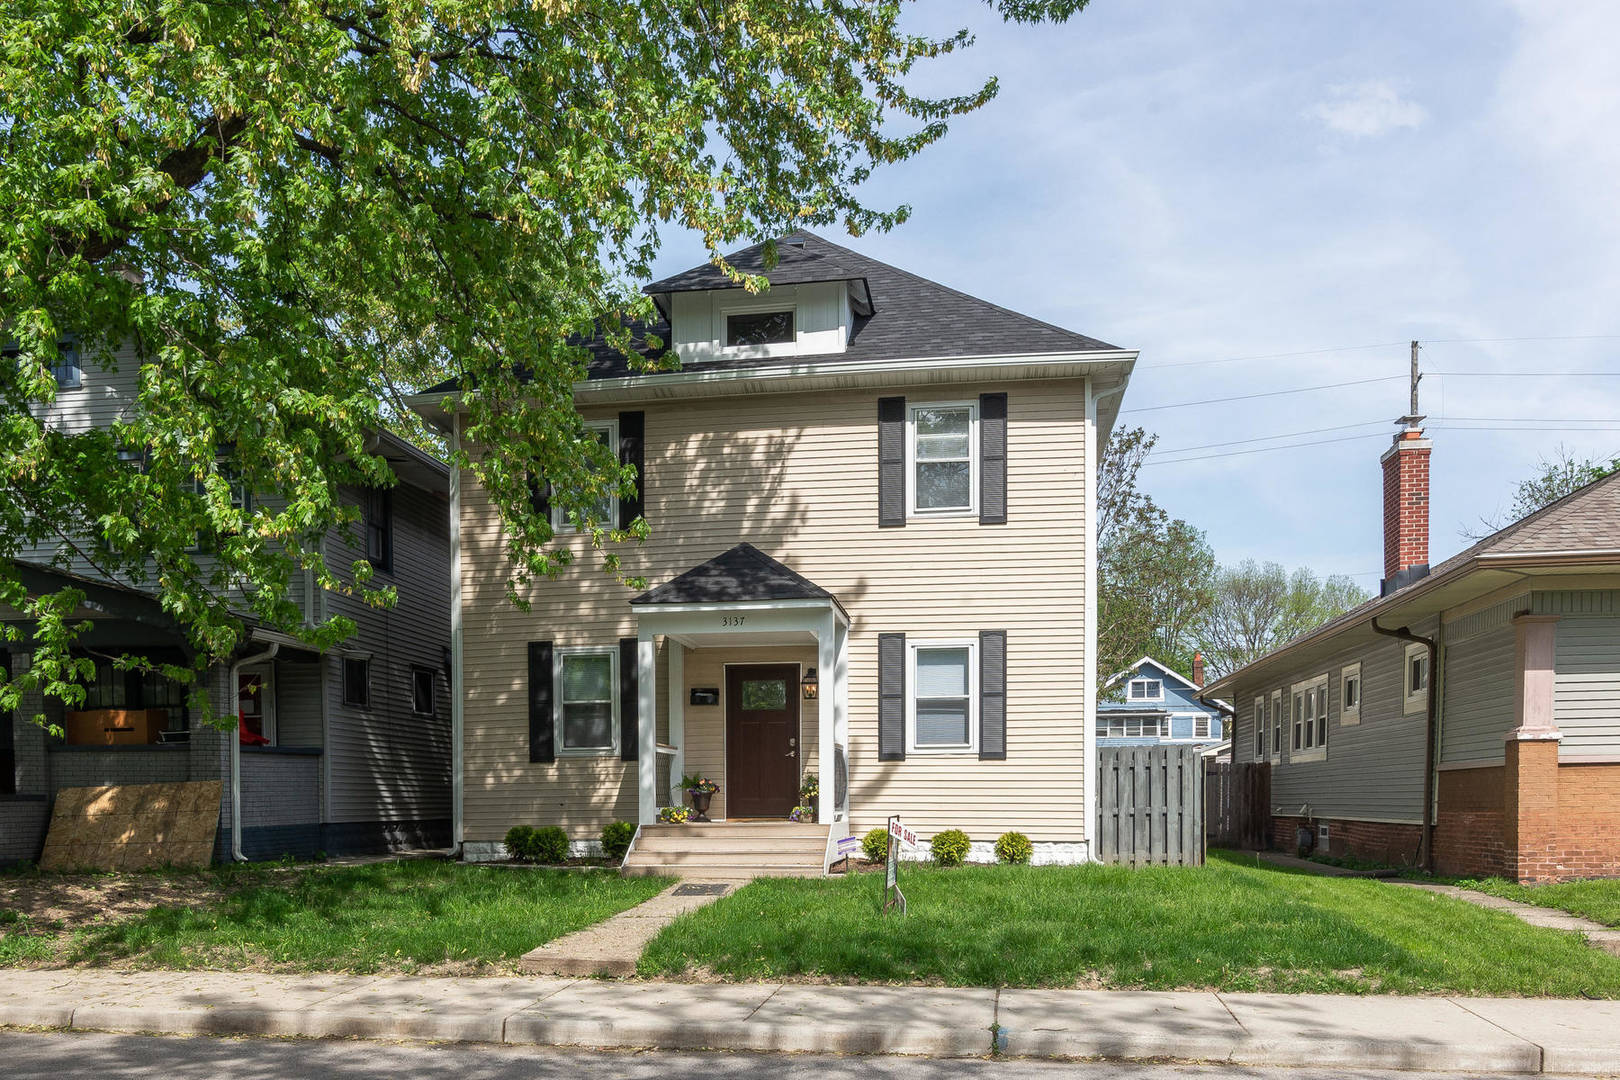 3137 N. Park Ave. Indianapolis, IN 46205